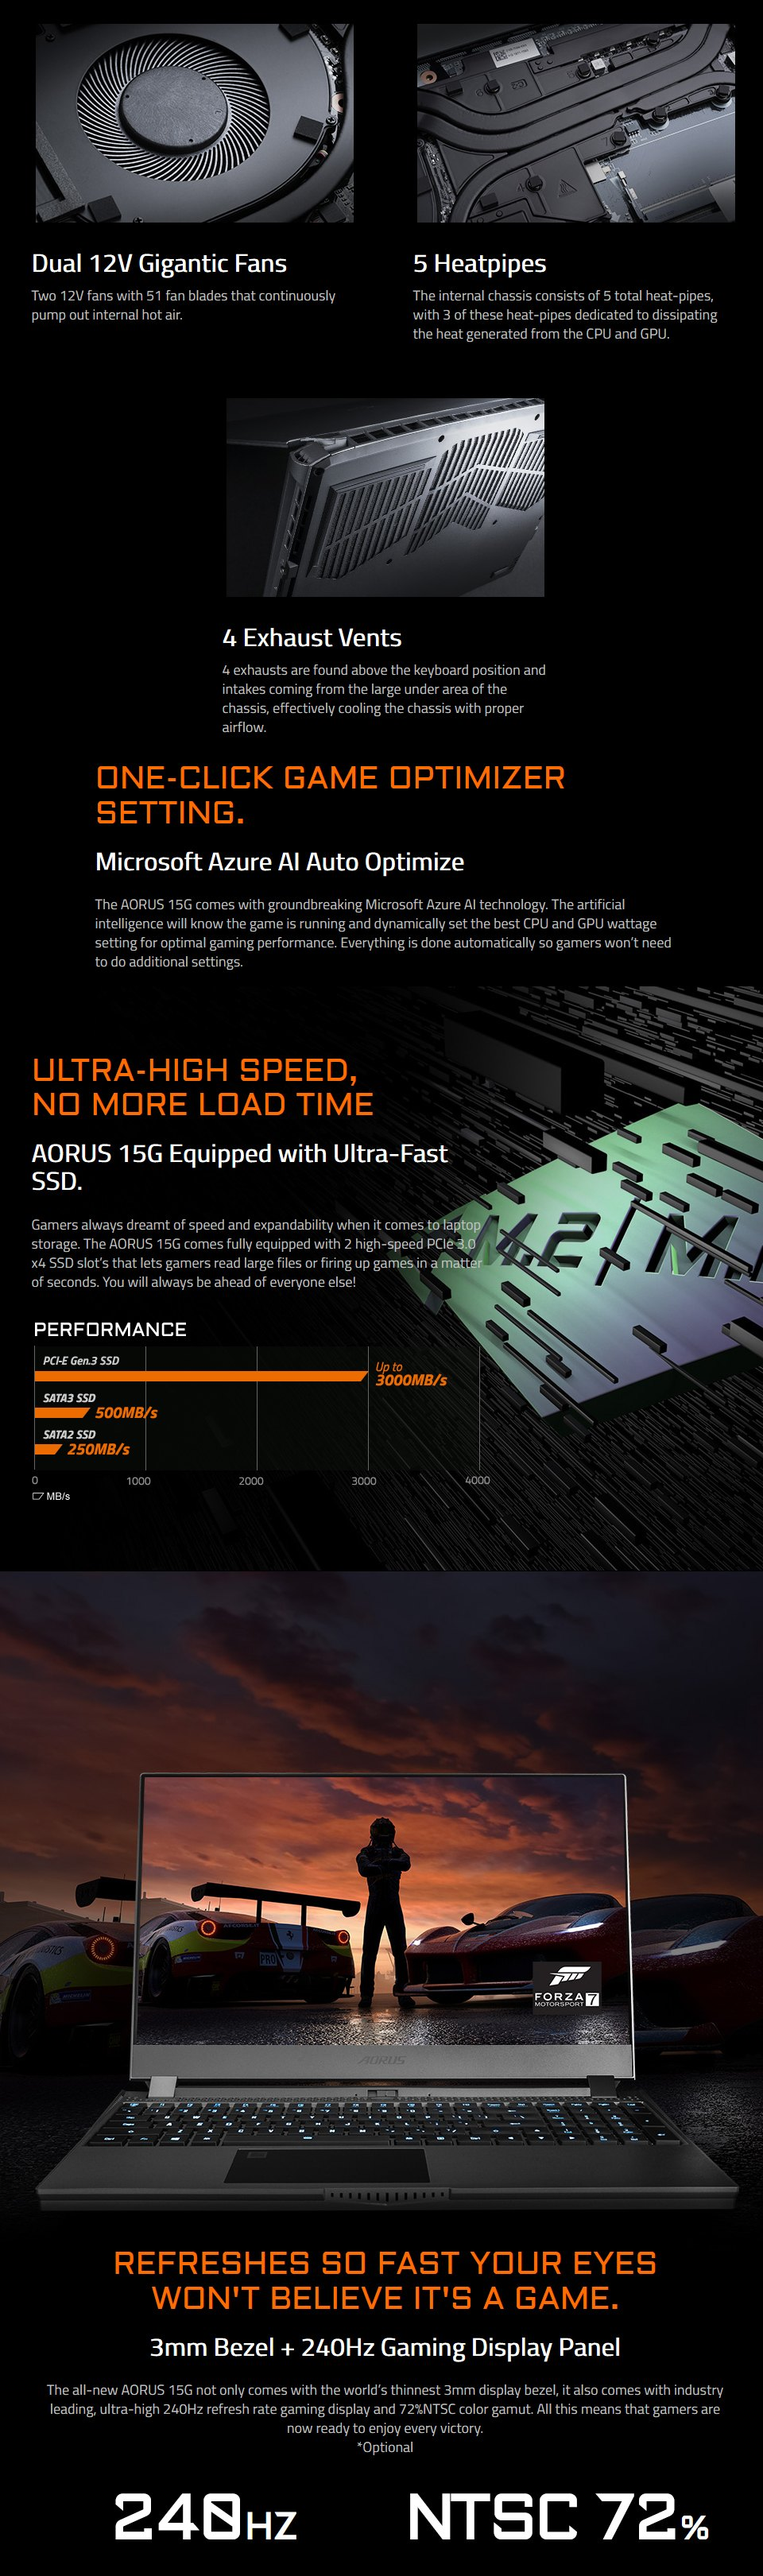 Gigabyte AORUS 15 Core i7 RTX 2070 Super 15.6in 240Hz Gaming Laptop features 4